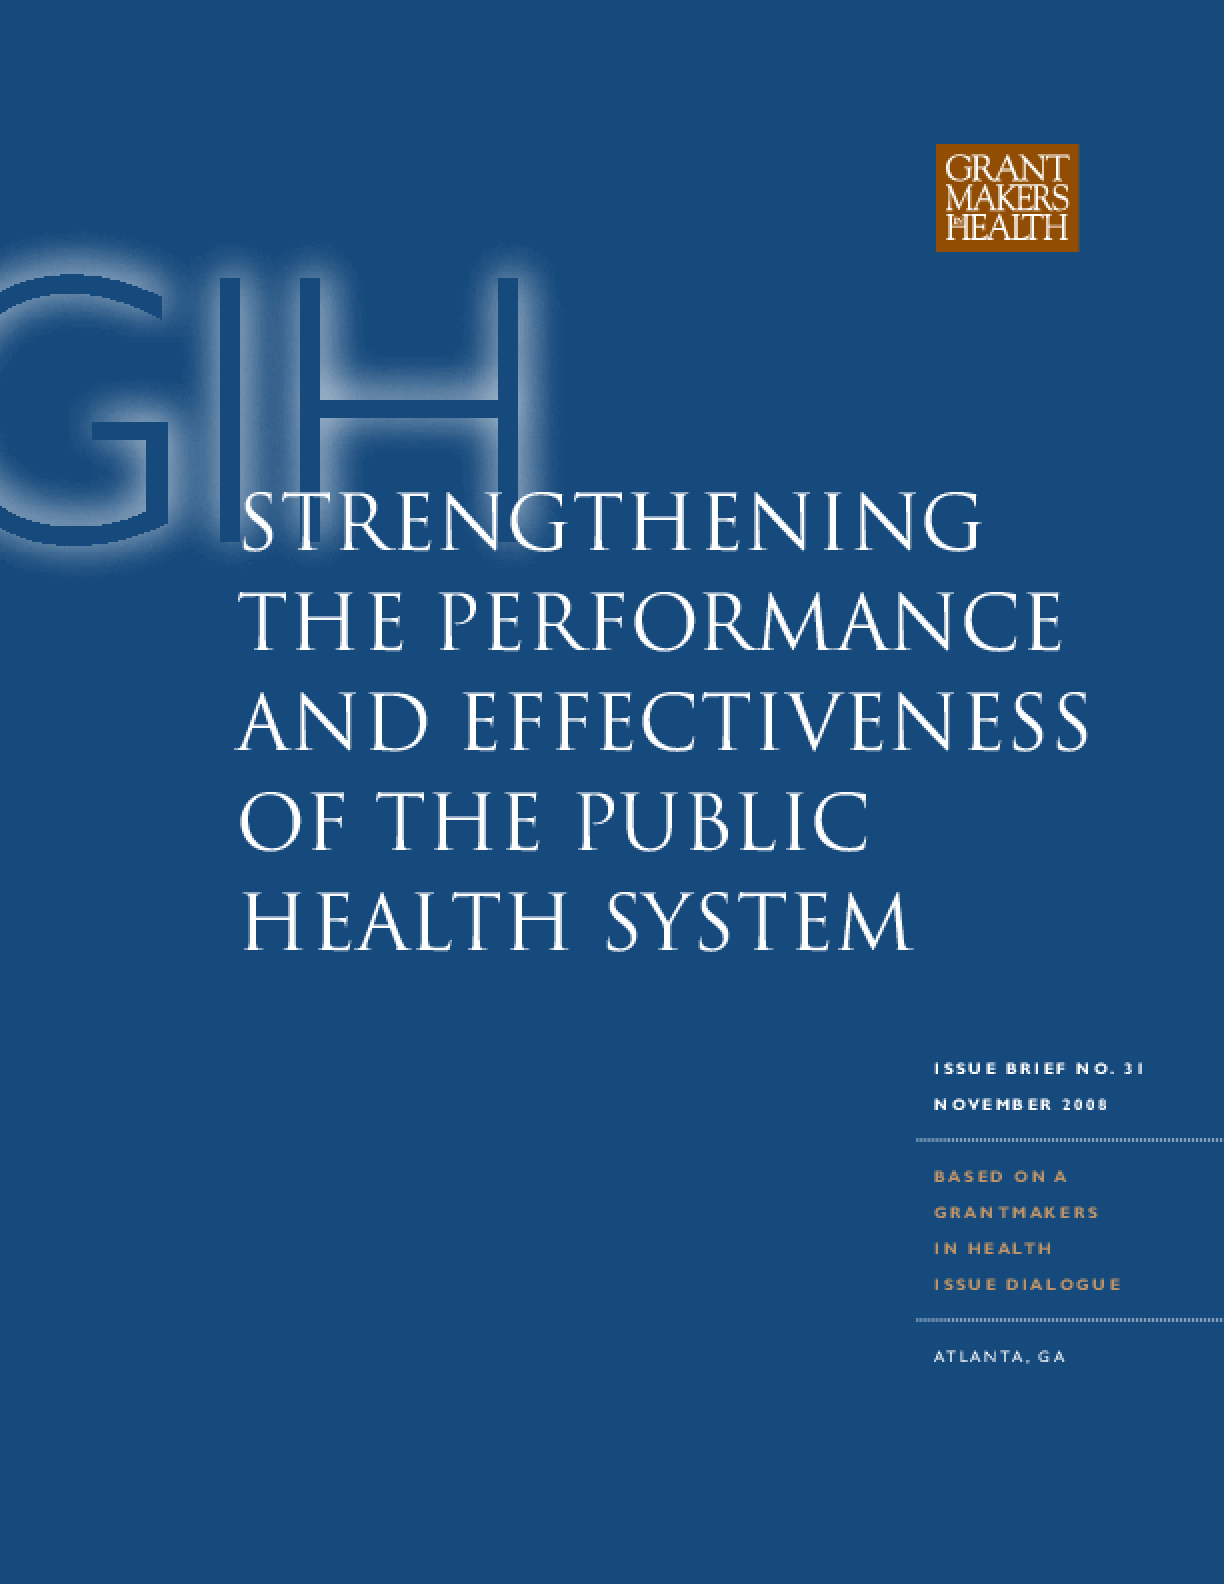 Strengthening the Performance and Effectiveness of the Public Health System